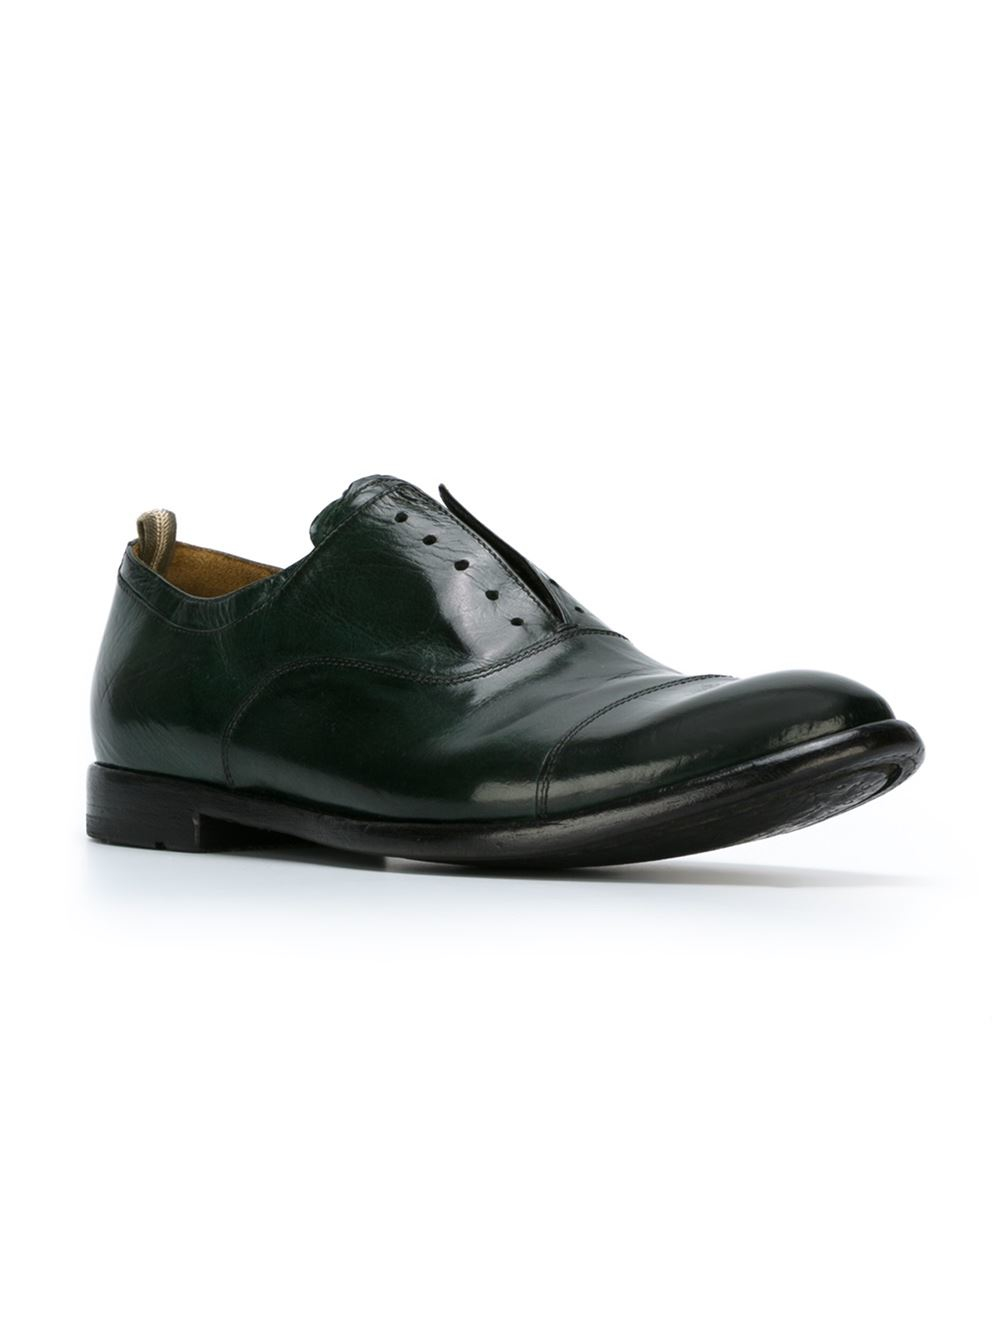 Lyst - Officine Creative Laceless Oxford Shoes In Green For Men